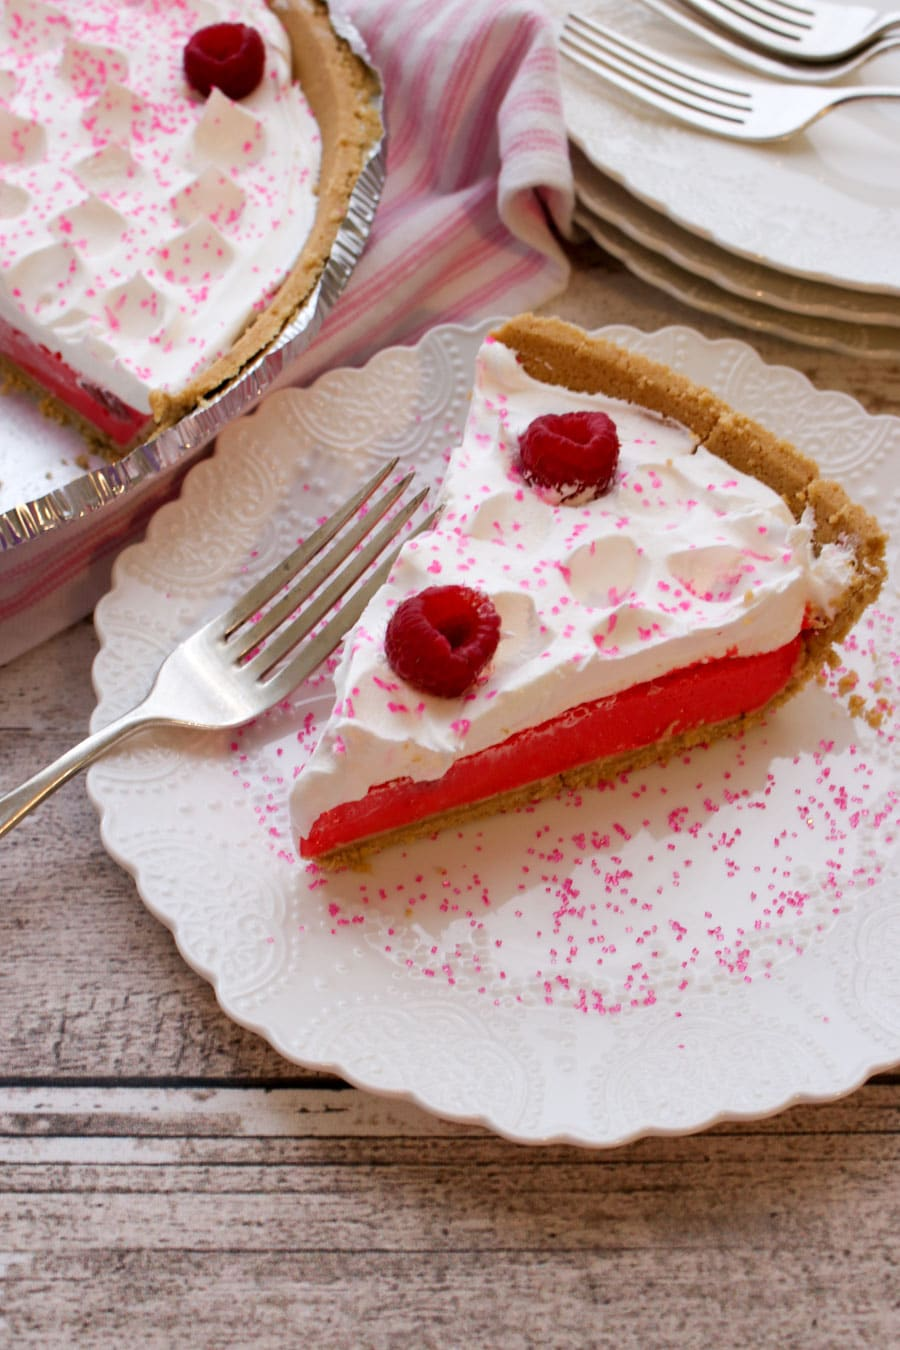 Slice of Raspberry Jello Yogurt Pie